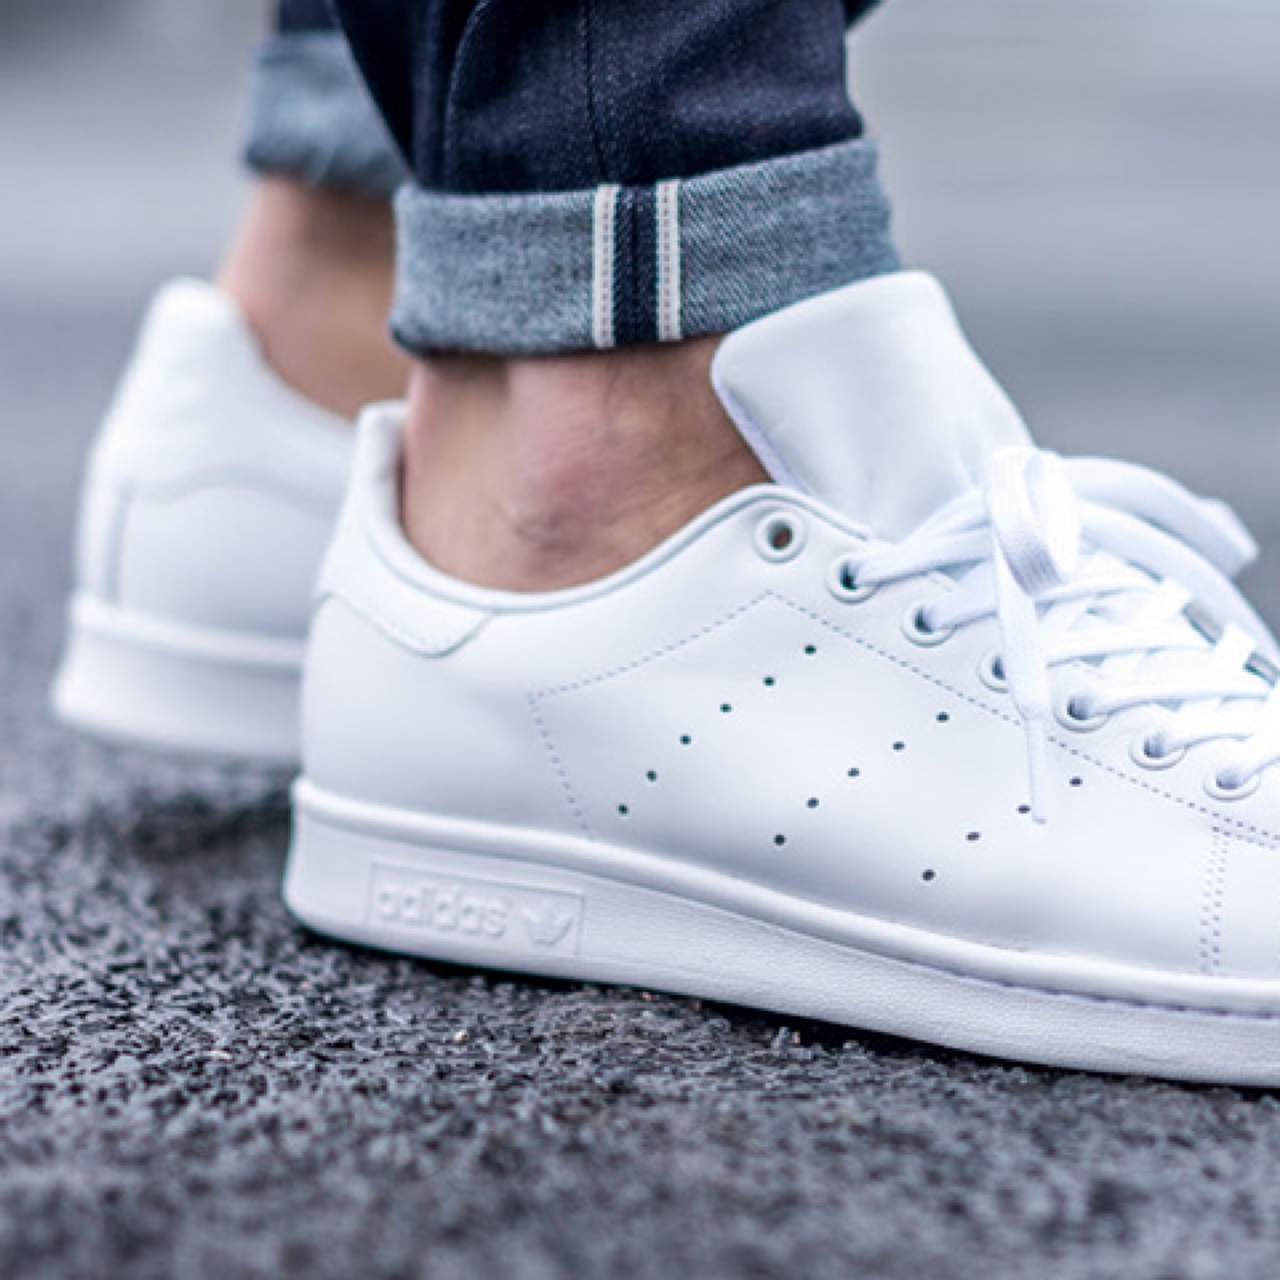 photos officielles b1332 e12fb All white stan smith sneakers by Adidas. Size 7 US... - Depop